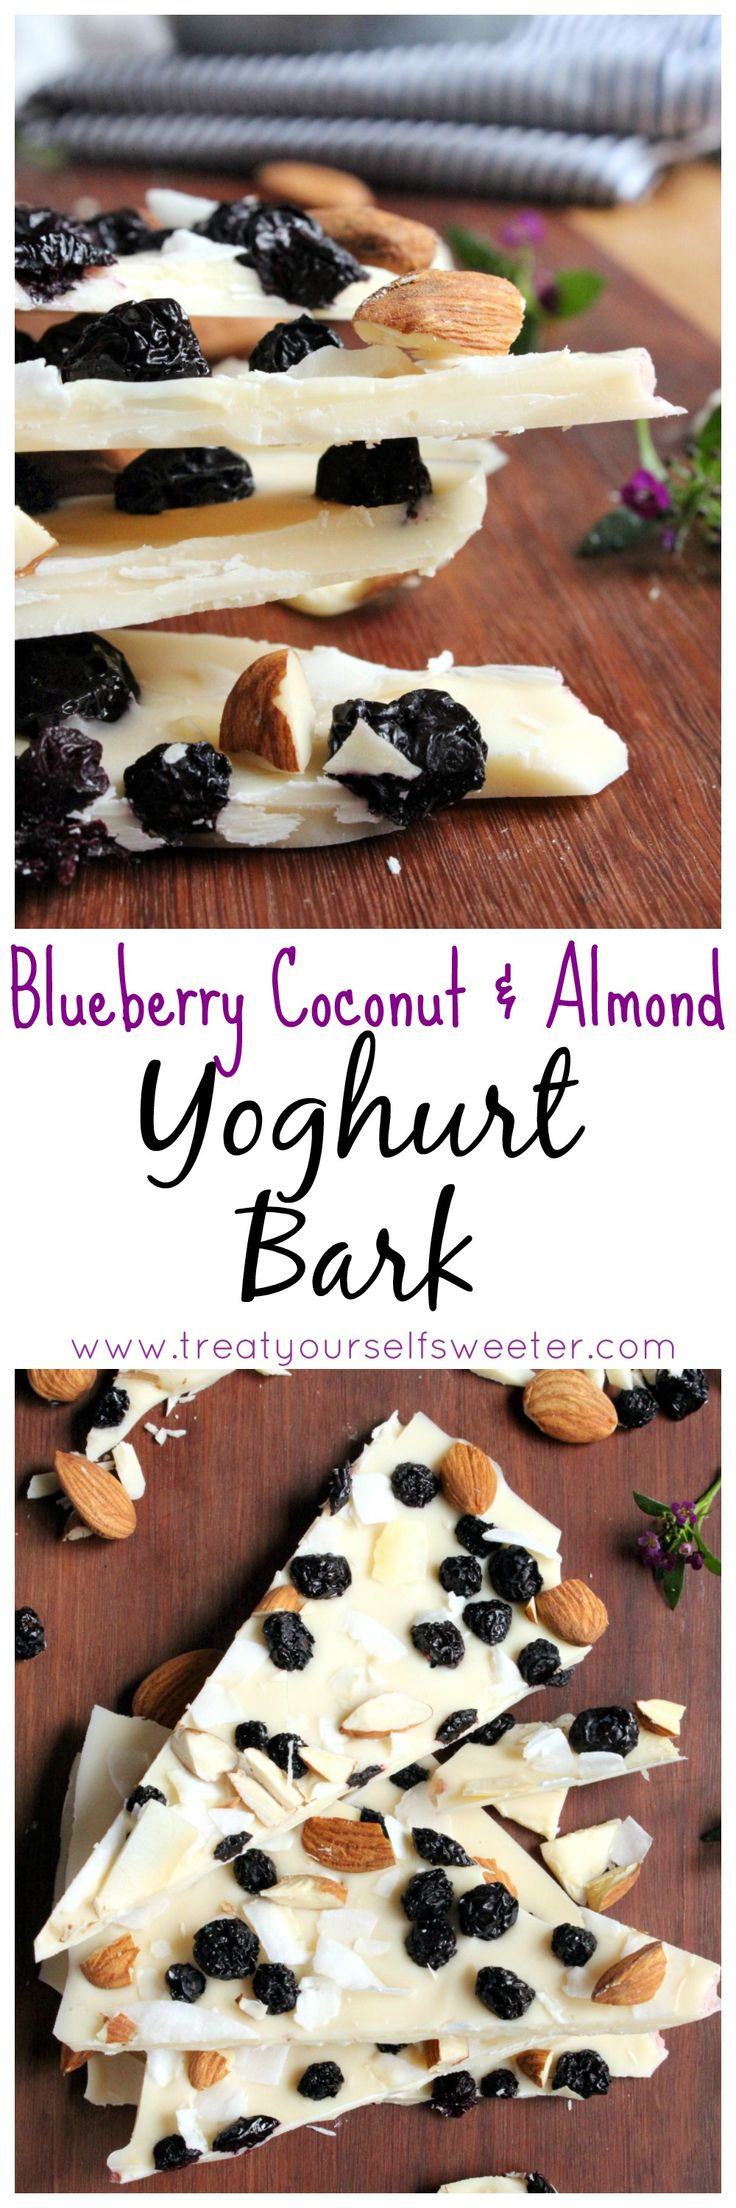 Blueberry Coconut and Almond Yoghurt Bark; the crunch of crispy, creamy yoghurt, pops of sweet blueberries, flakes of coconut and crunch of almonds. A fantastic sweet snack to crush the sweet tooth!